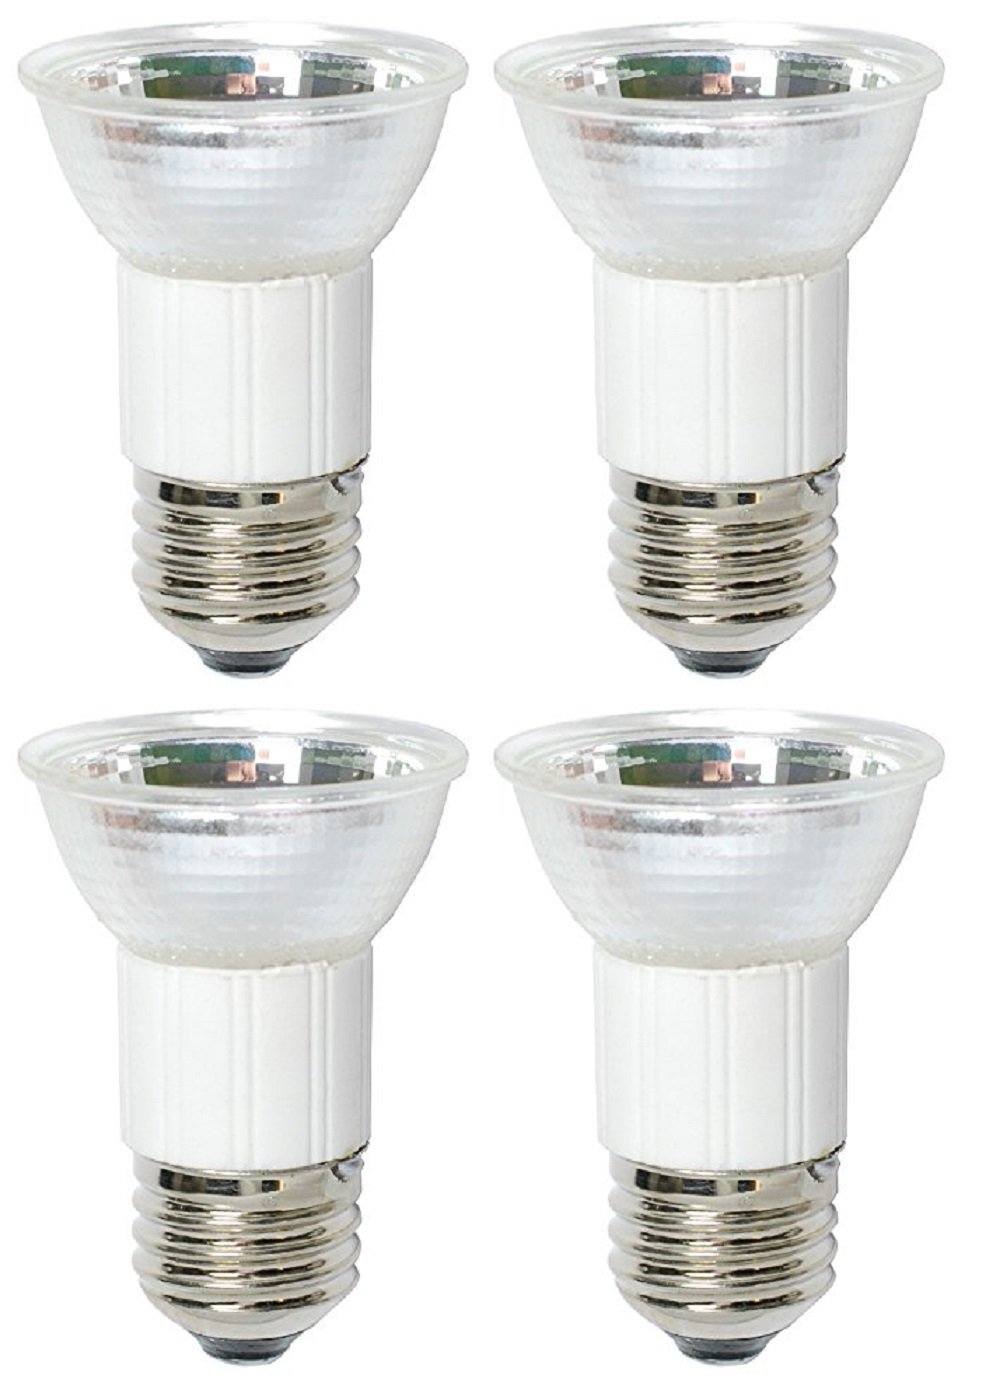 Pack Of 4 75 Watt JDR MR16 75W 120 Volt Medium Base Halogen Flood Lamp E26 120V Mini Reflector Light Bulb